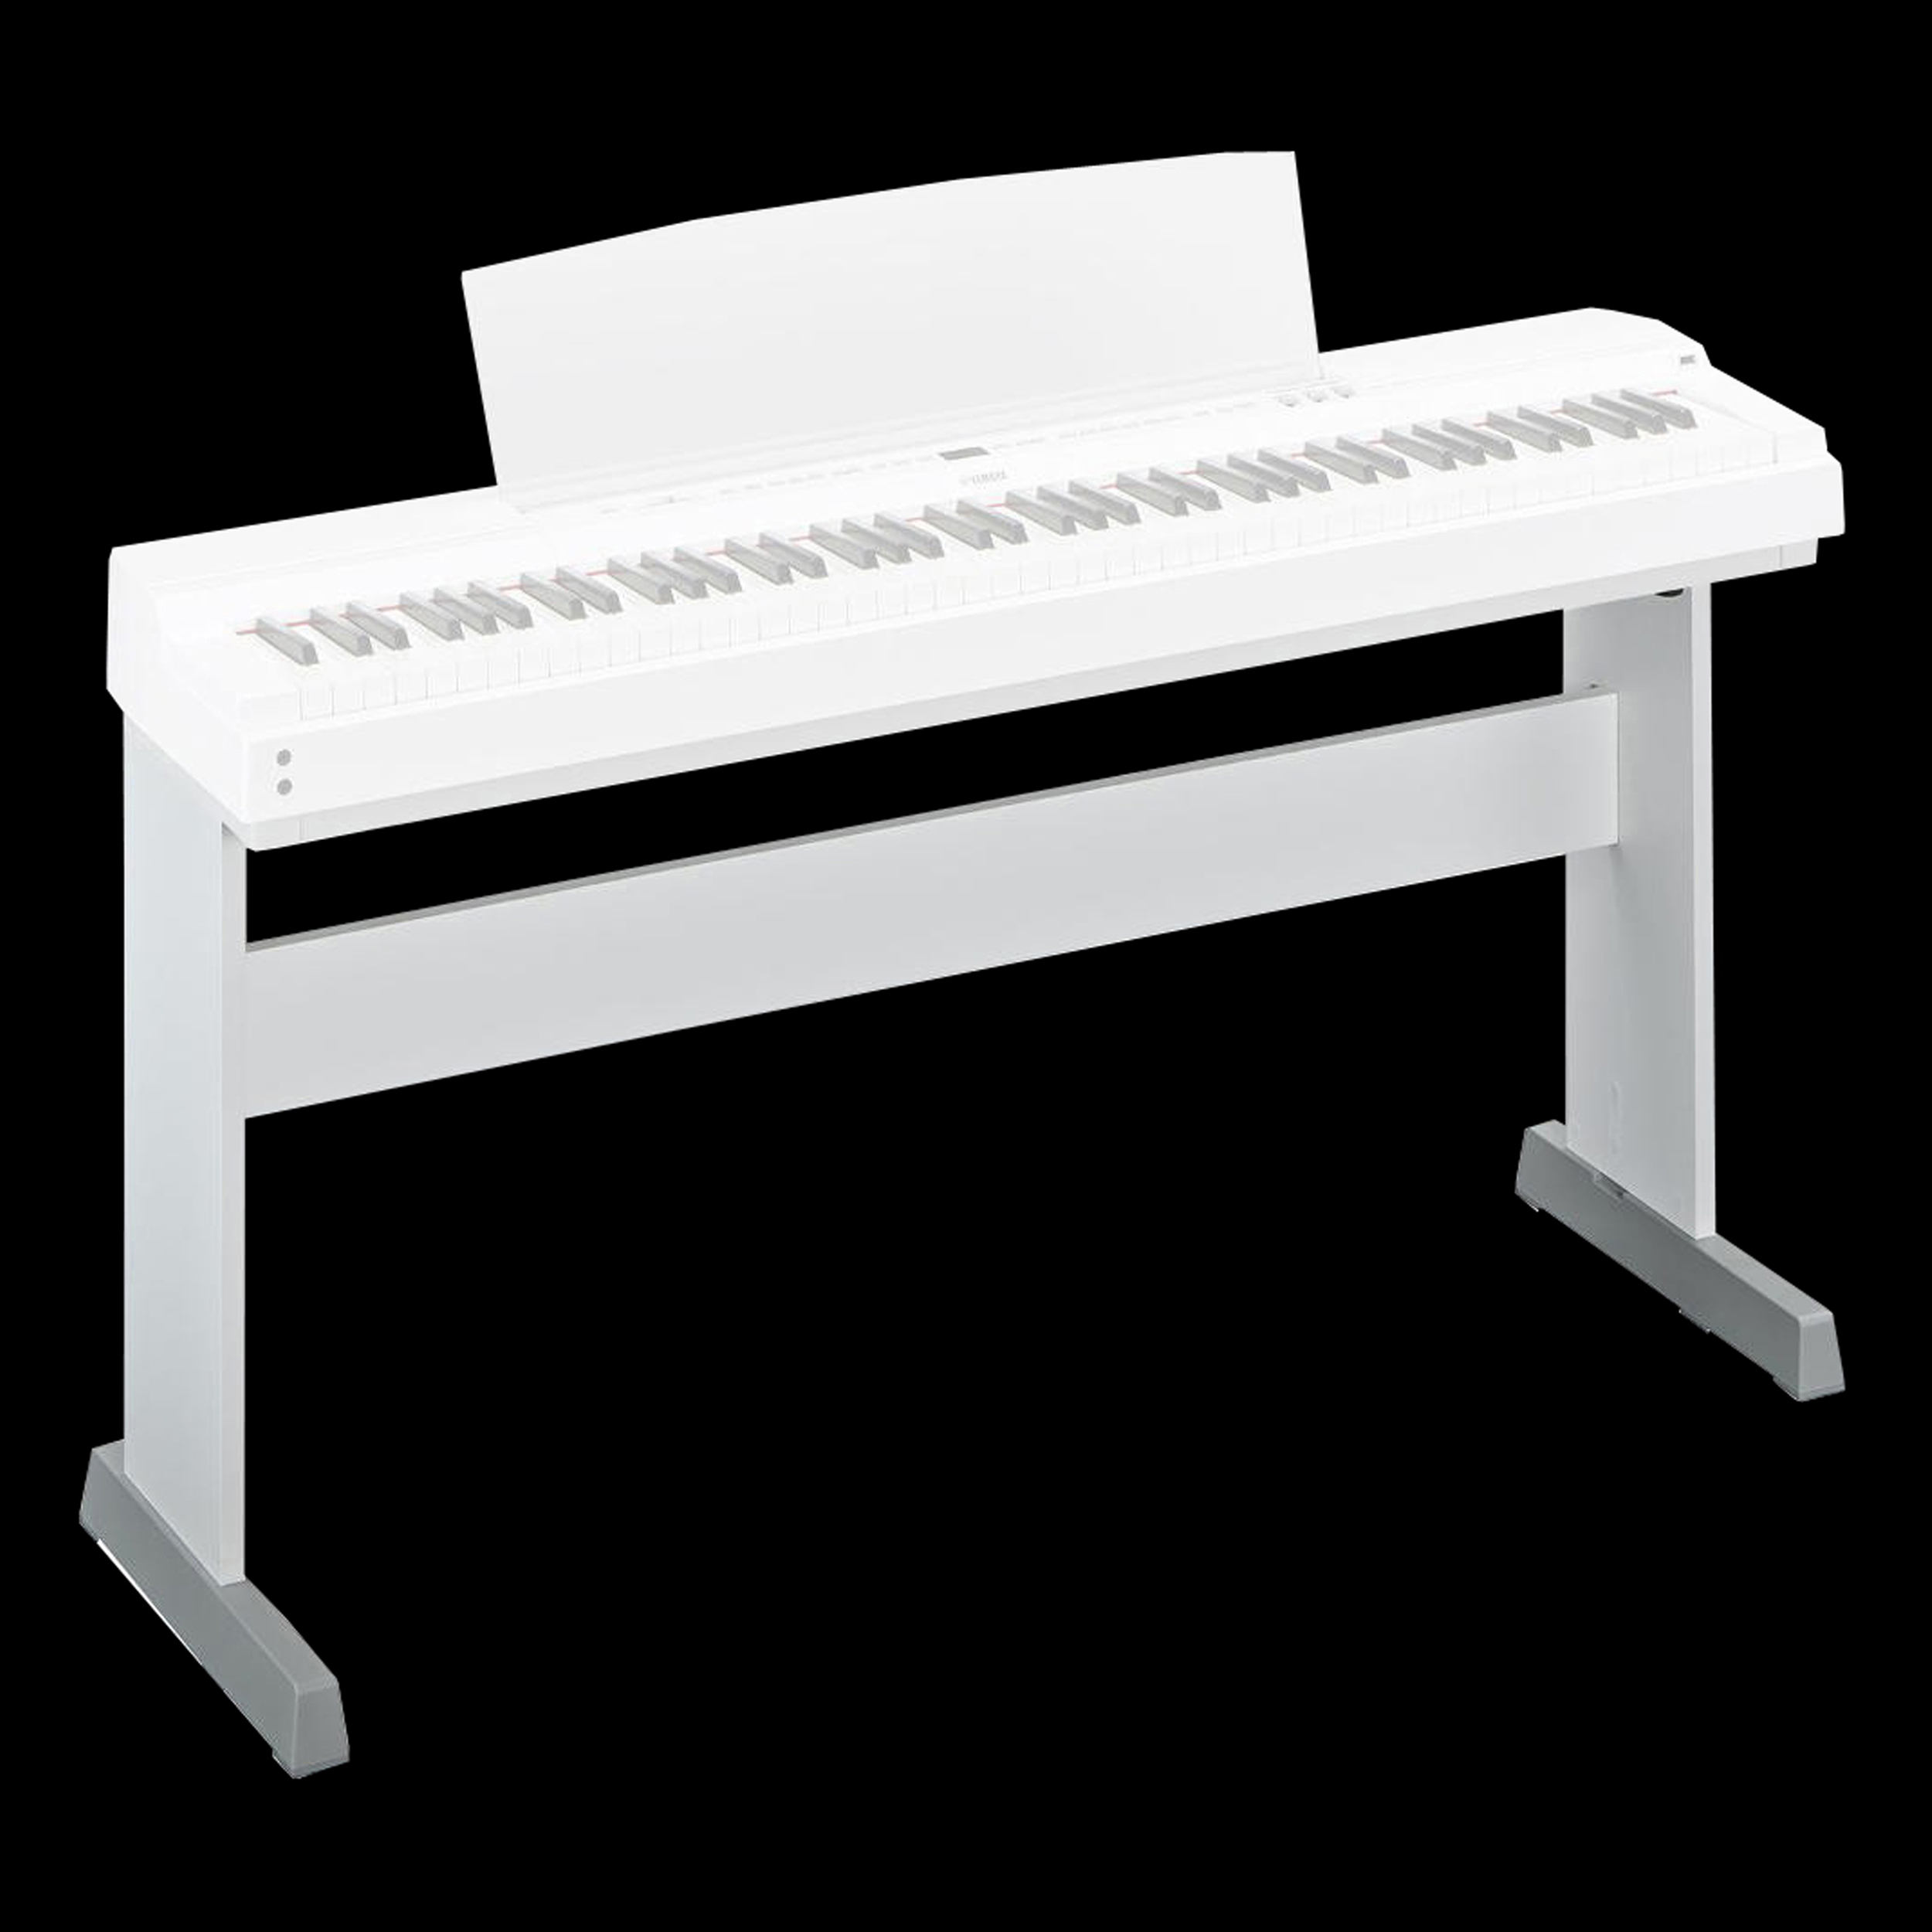 Yamaha l 255w furniture stand for p 255w digital piano in for Yamaha p 255 manual